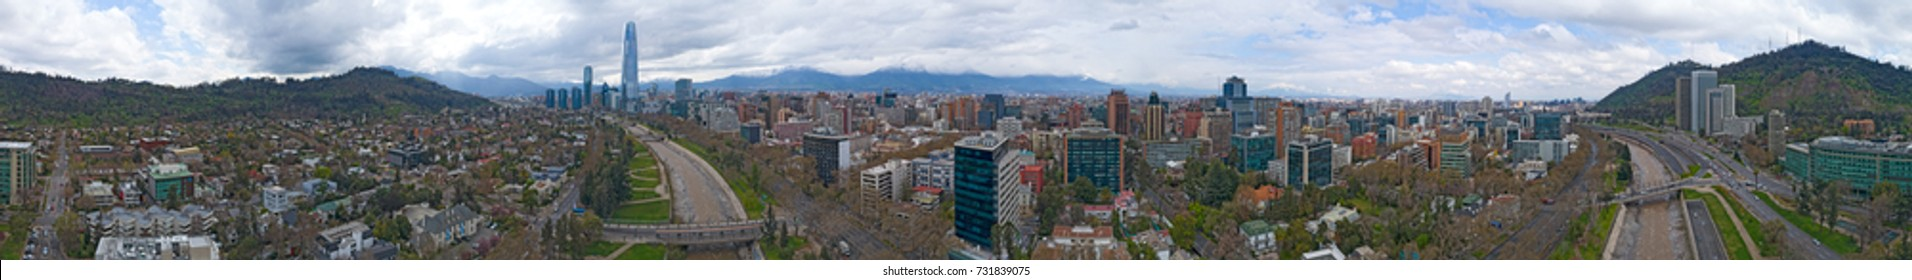 Santiago, Chile 360 Aerial Panorama View of City Skyline, River, and Mountains